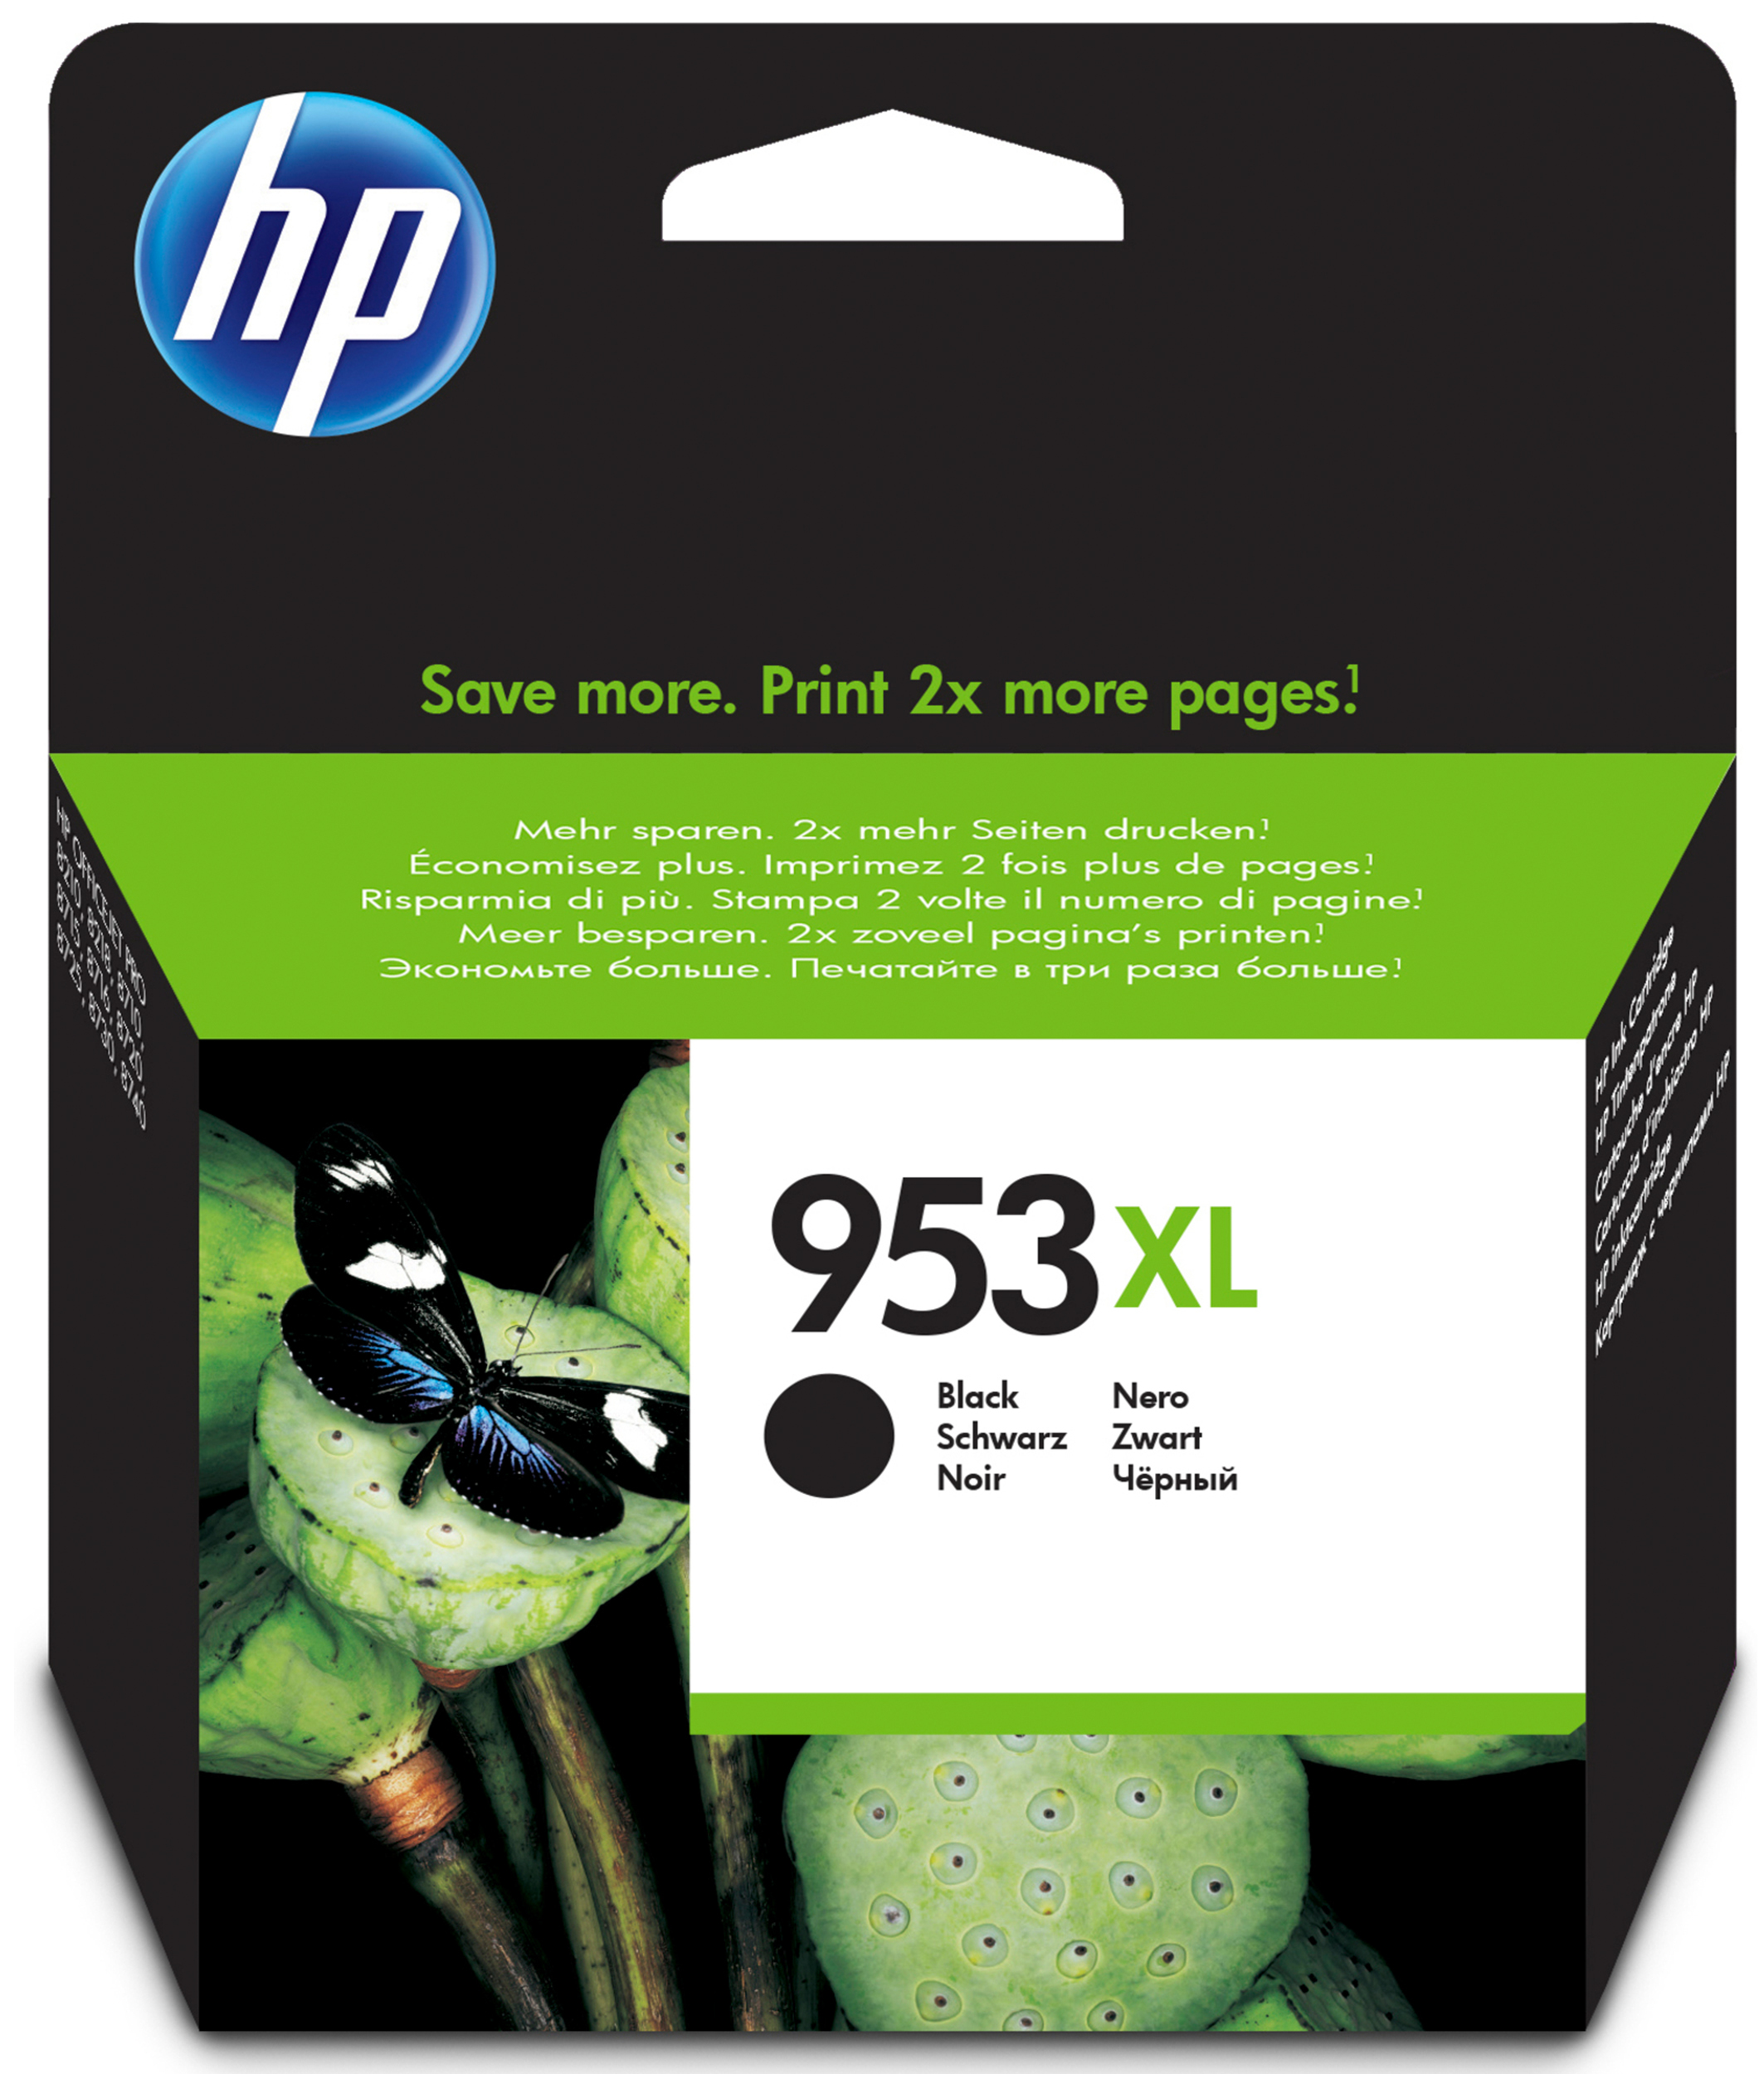 HP Hp 953xl Black Ink Cartridge High Yield L0s70ae - AD01